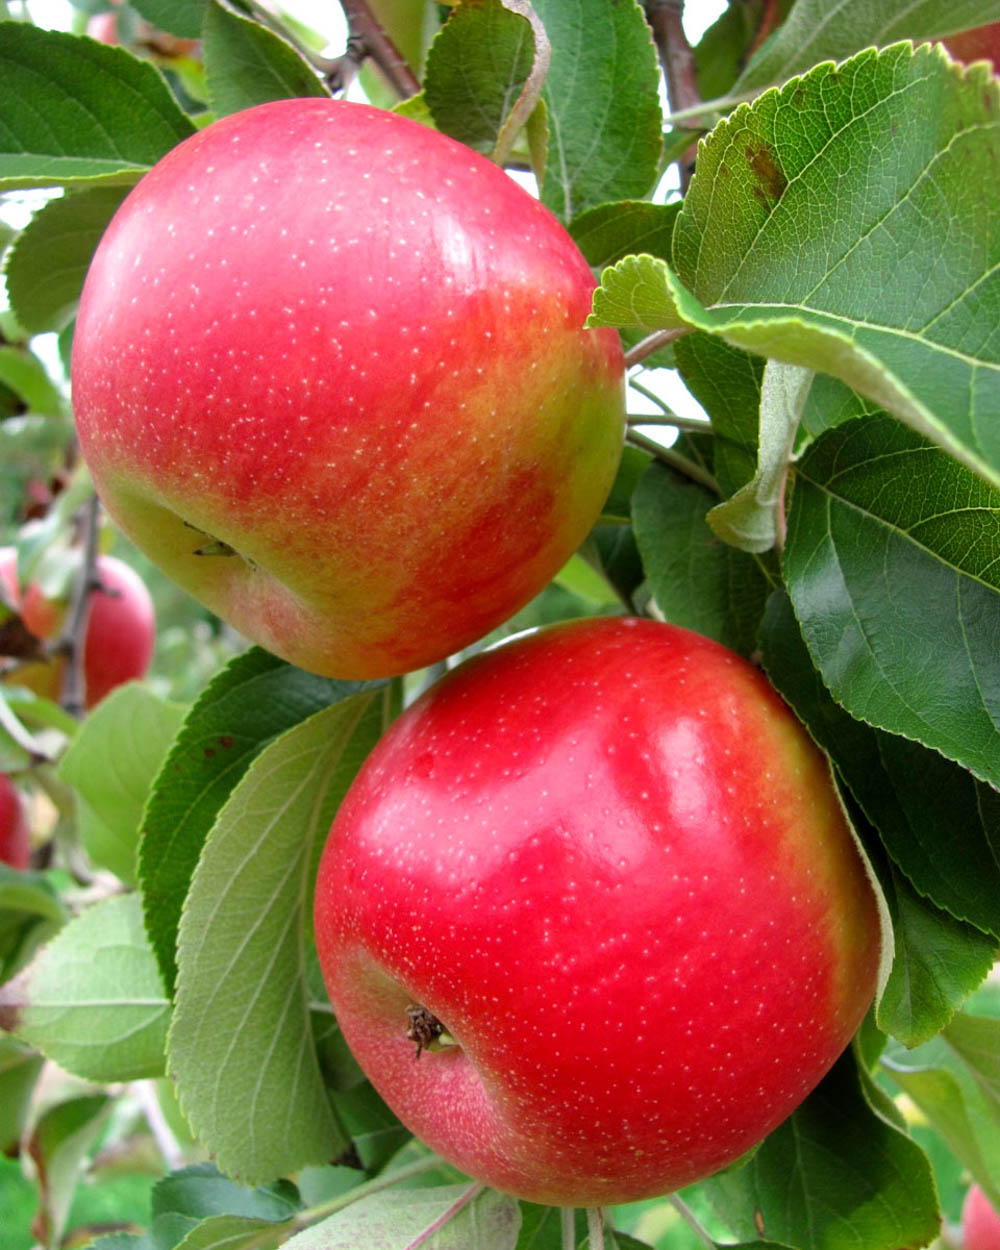 Cordera apples